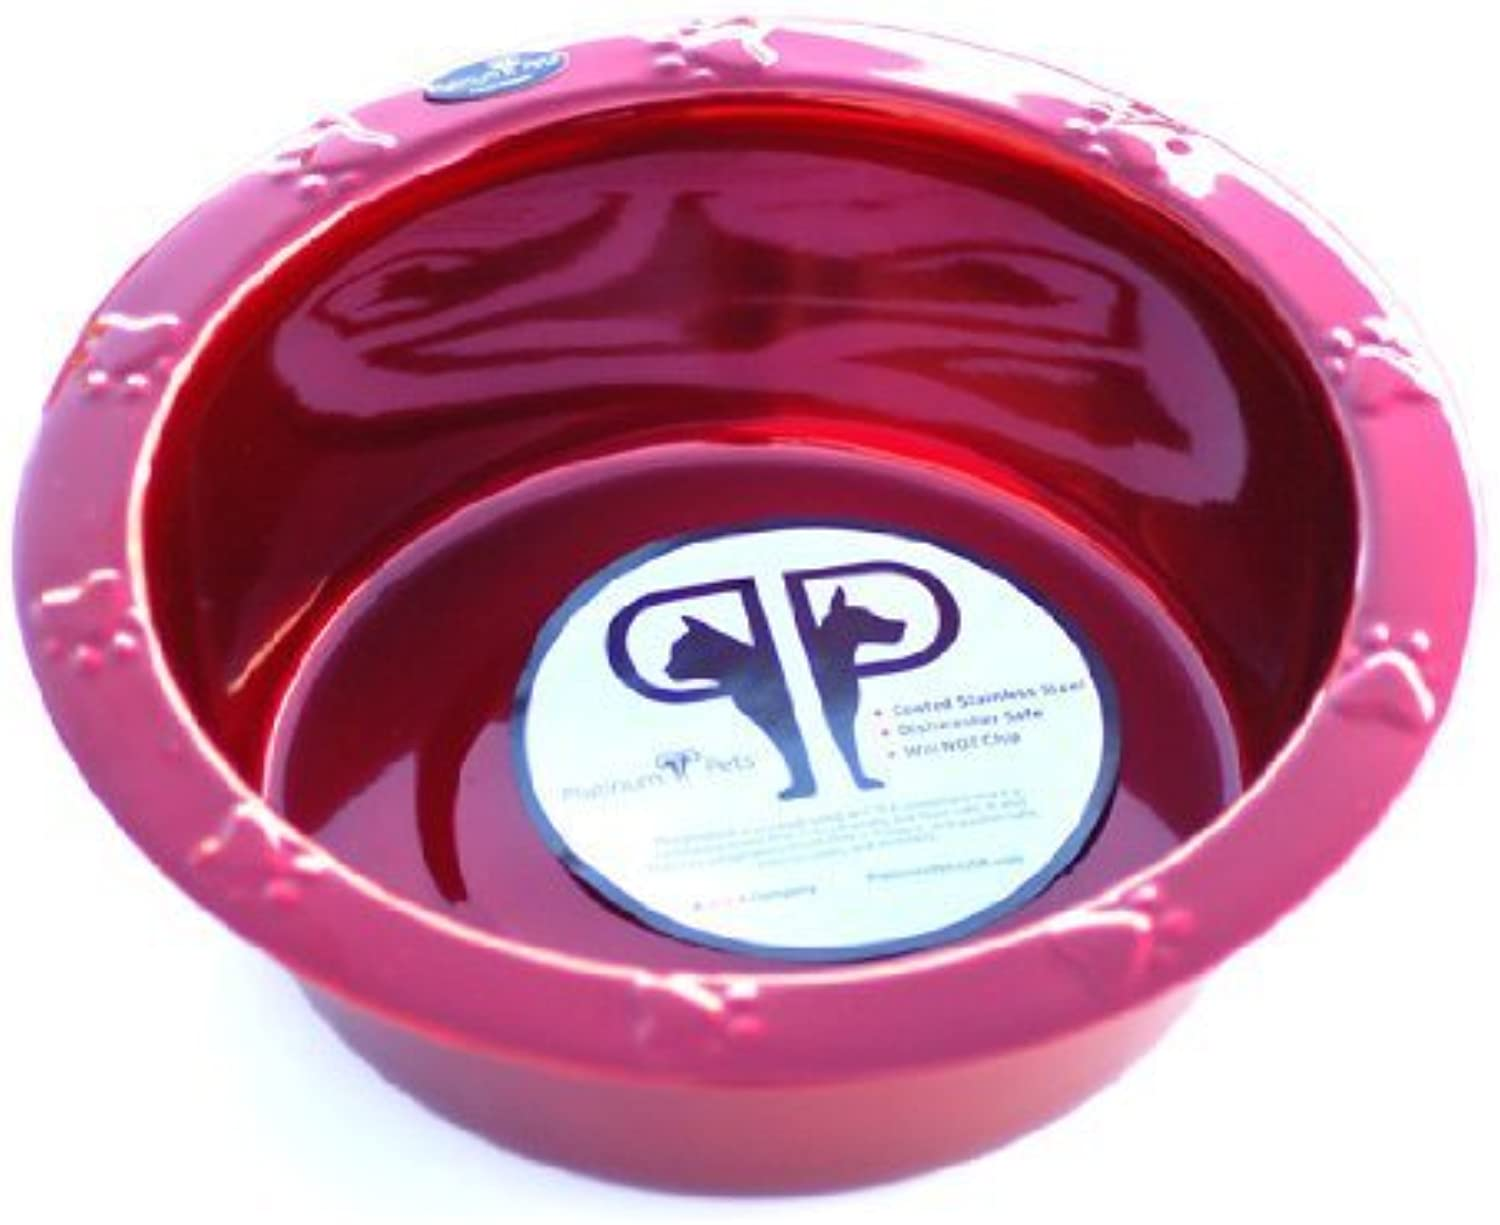 Platinum Pets 8Cup Stainless Steel Wide Rimmed Bowl, Red by Platinum Pets